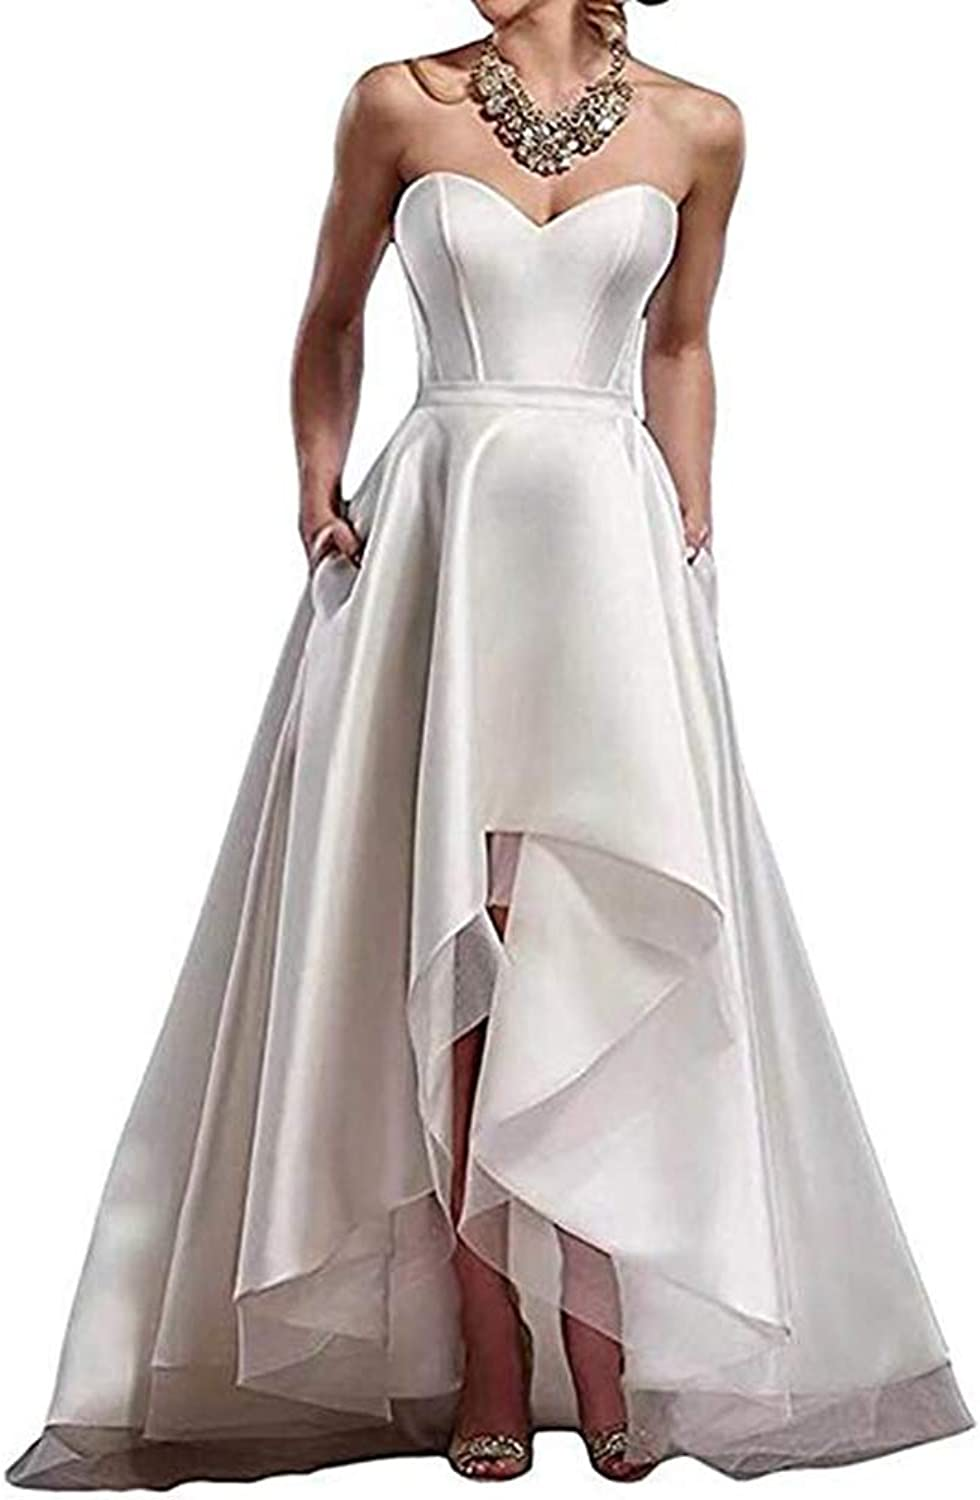 Sexy Sweetheart High Low Wedding Dresses for Bride 2019 Satin Sleeveless Bridal Dresses Wedding Party Gown with Pockets